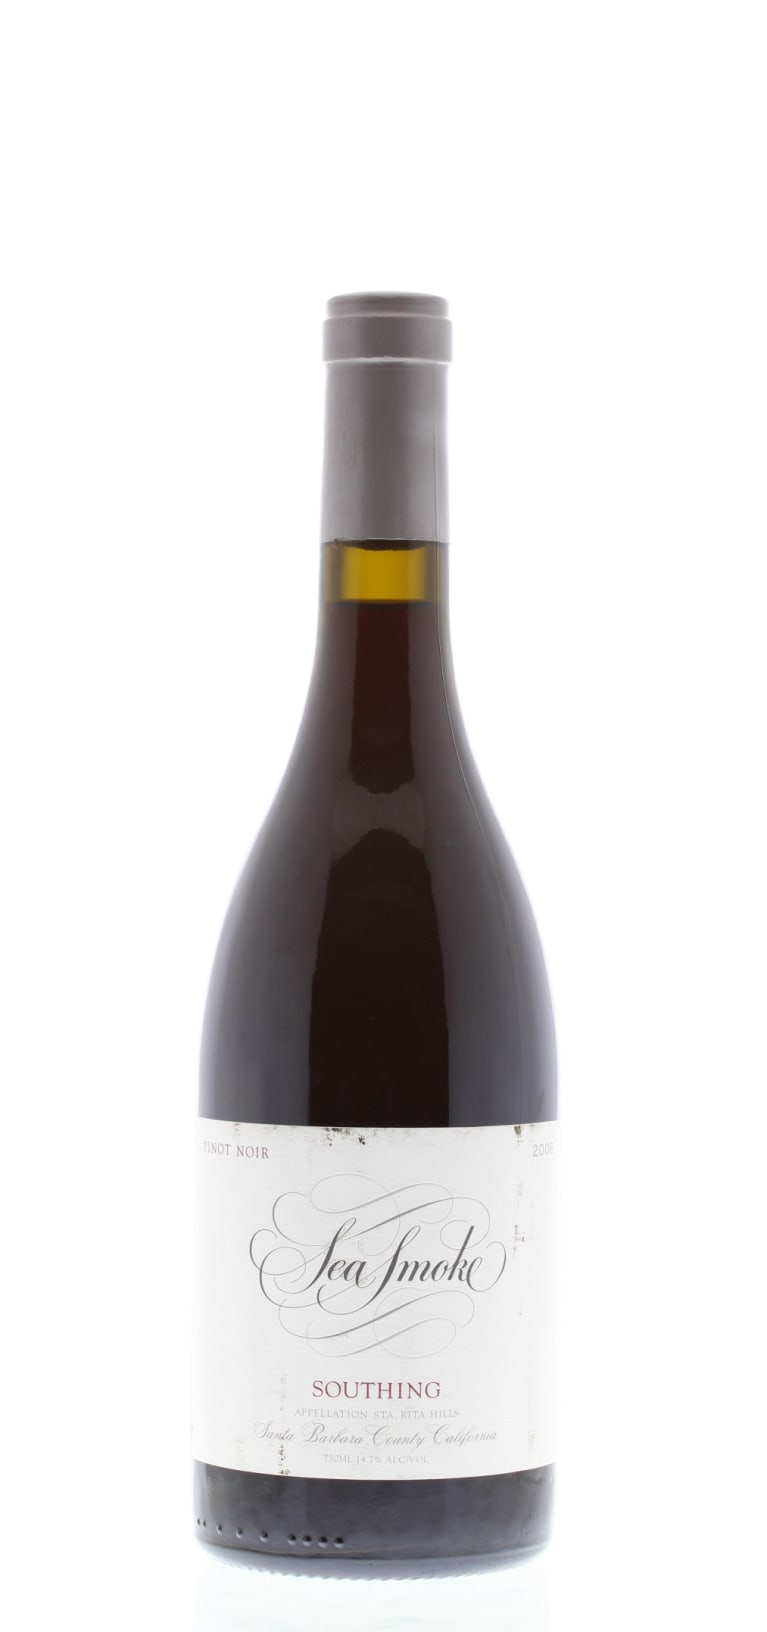 Sea Smoke Cellars Southing Pinot Noir 2006 Front Bottle Shot